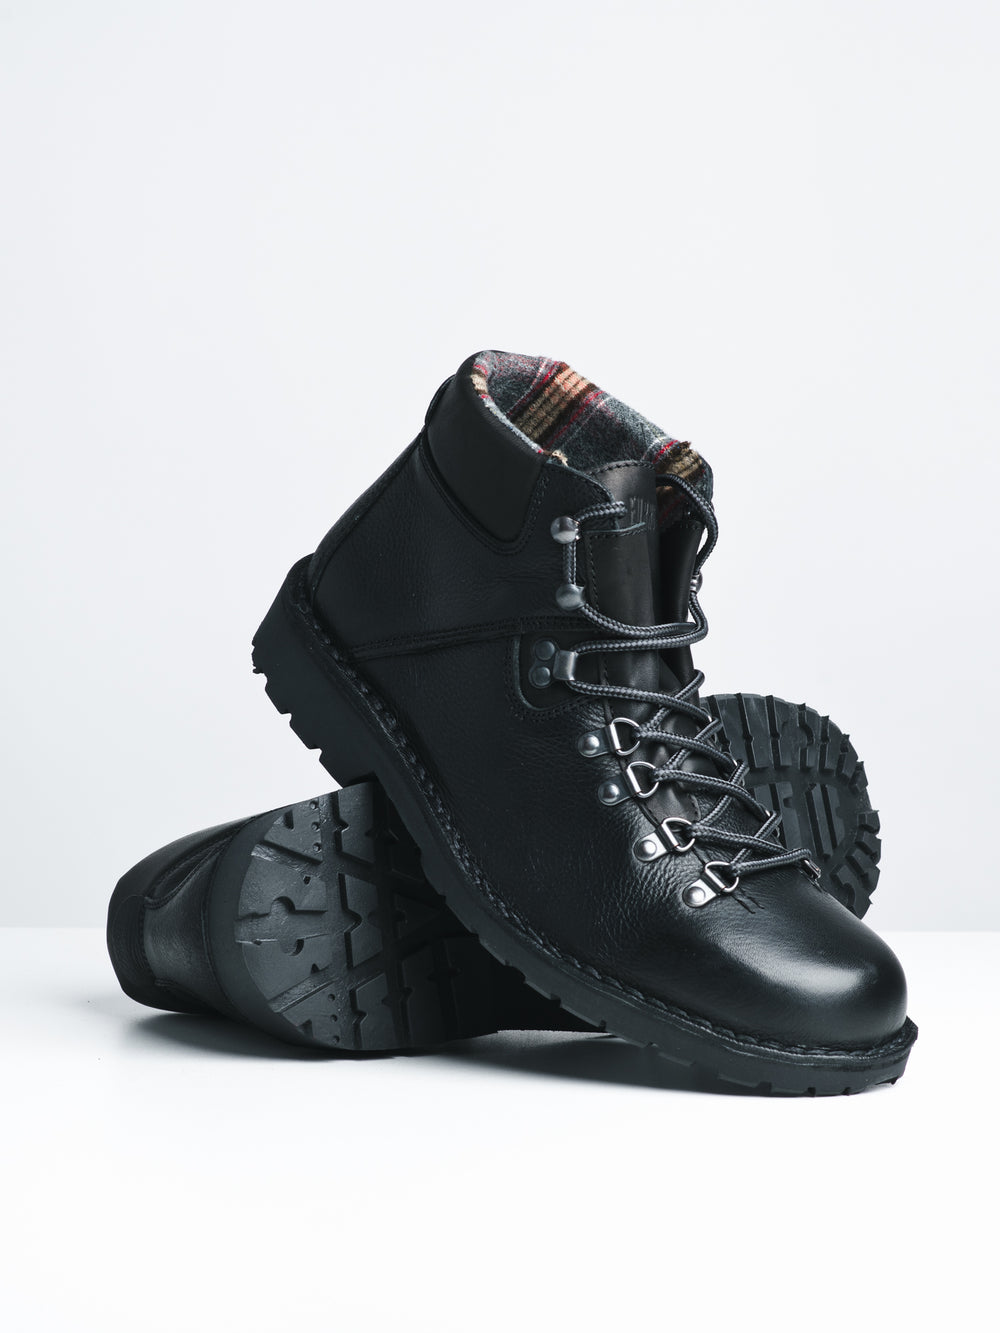 MENS PYRAMID - BLACK-D4